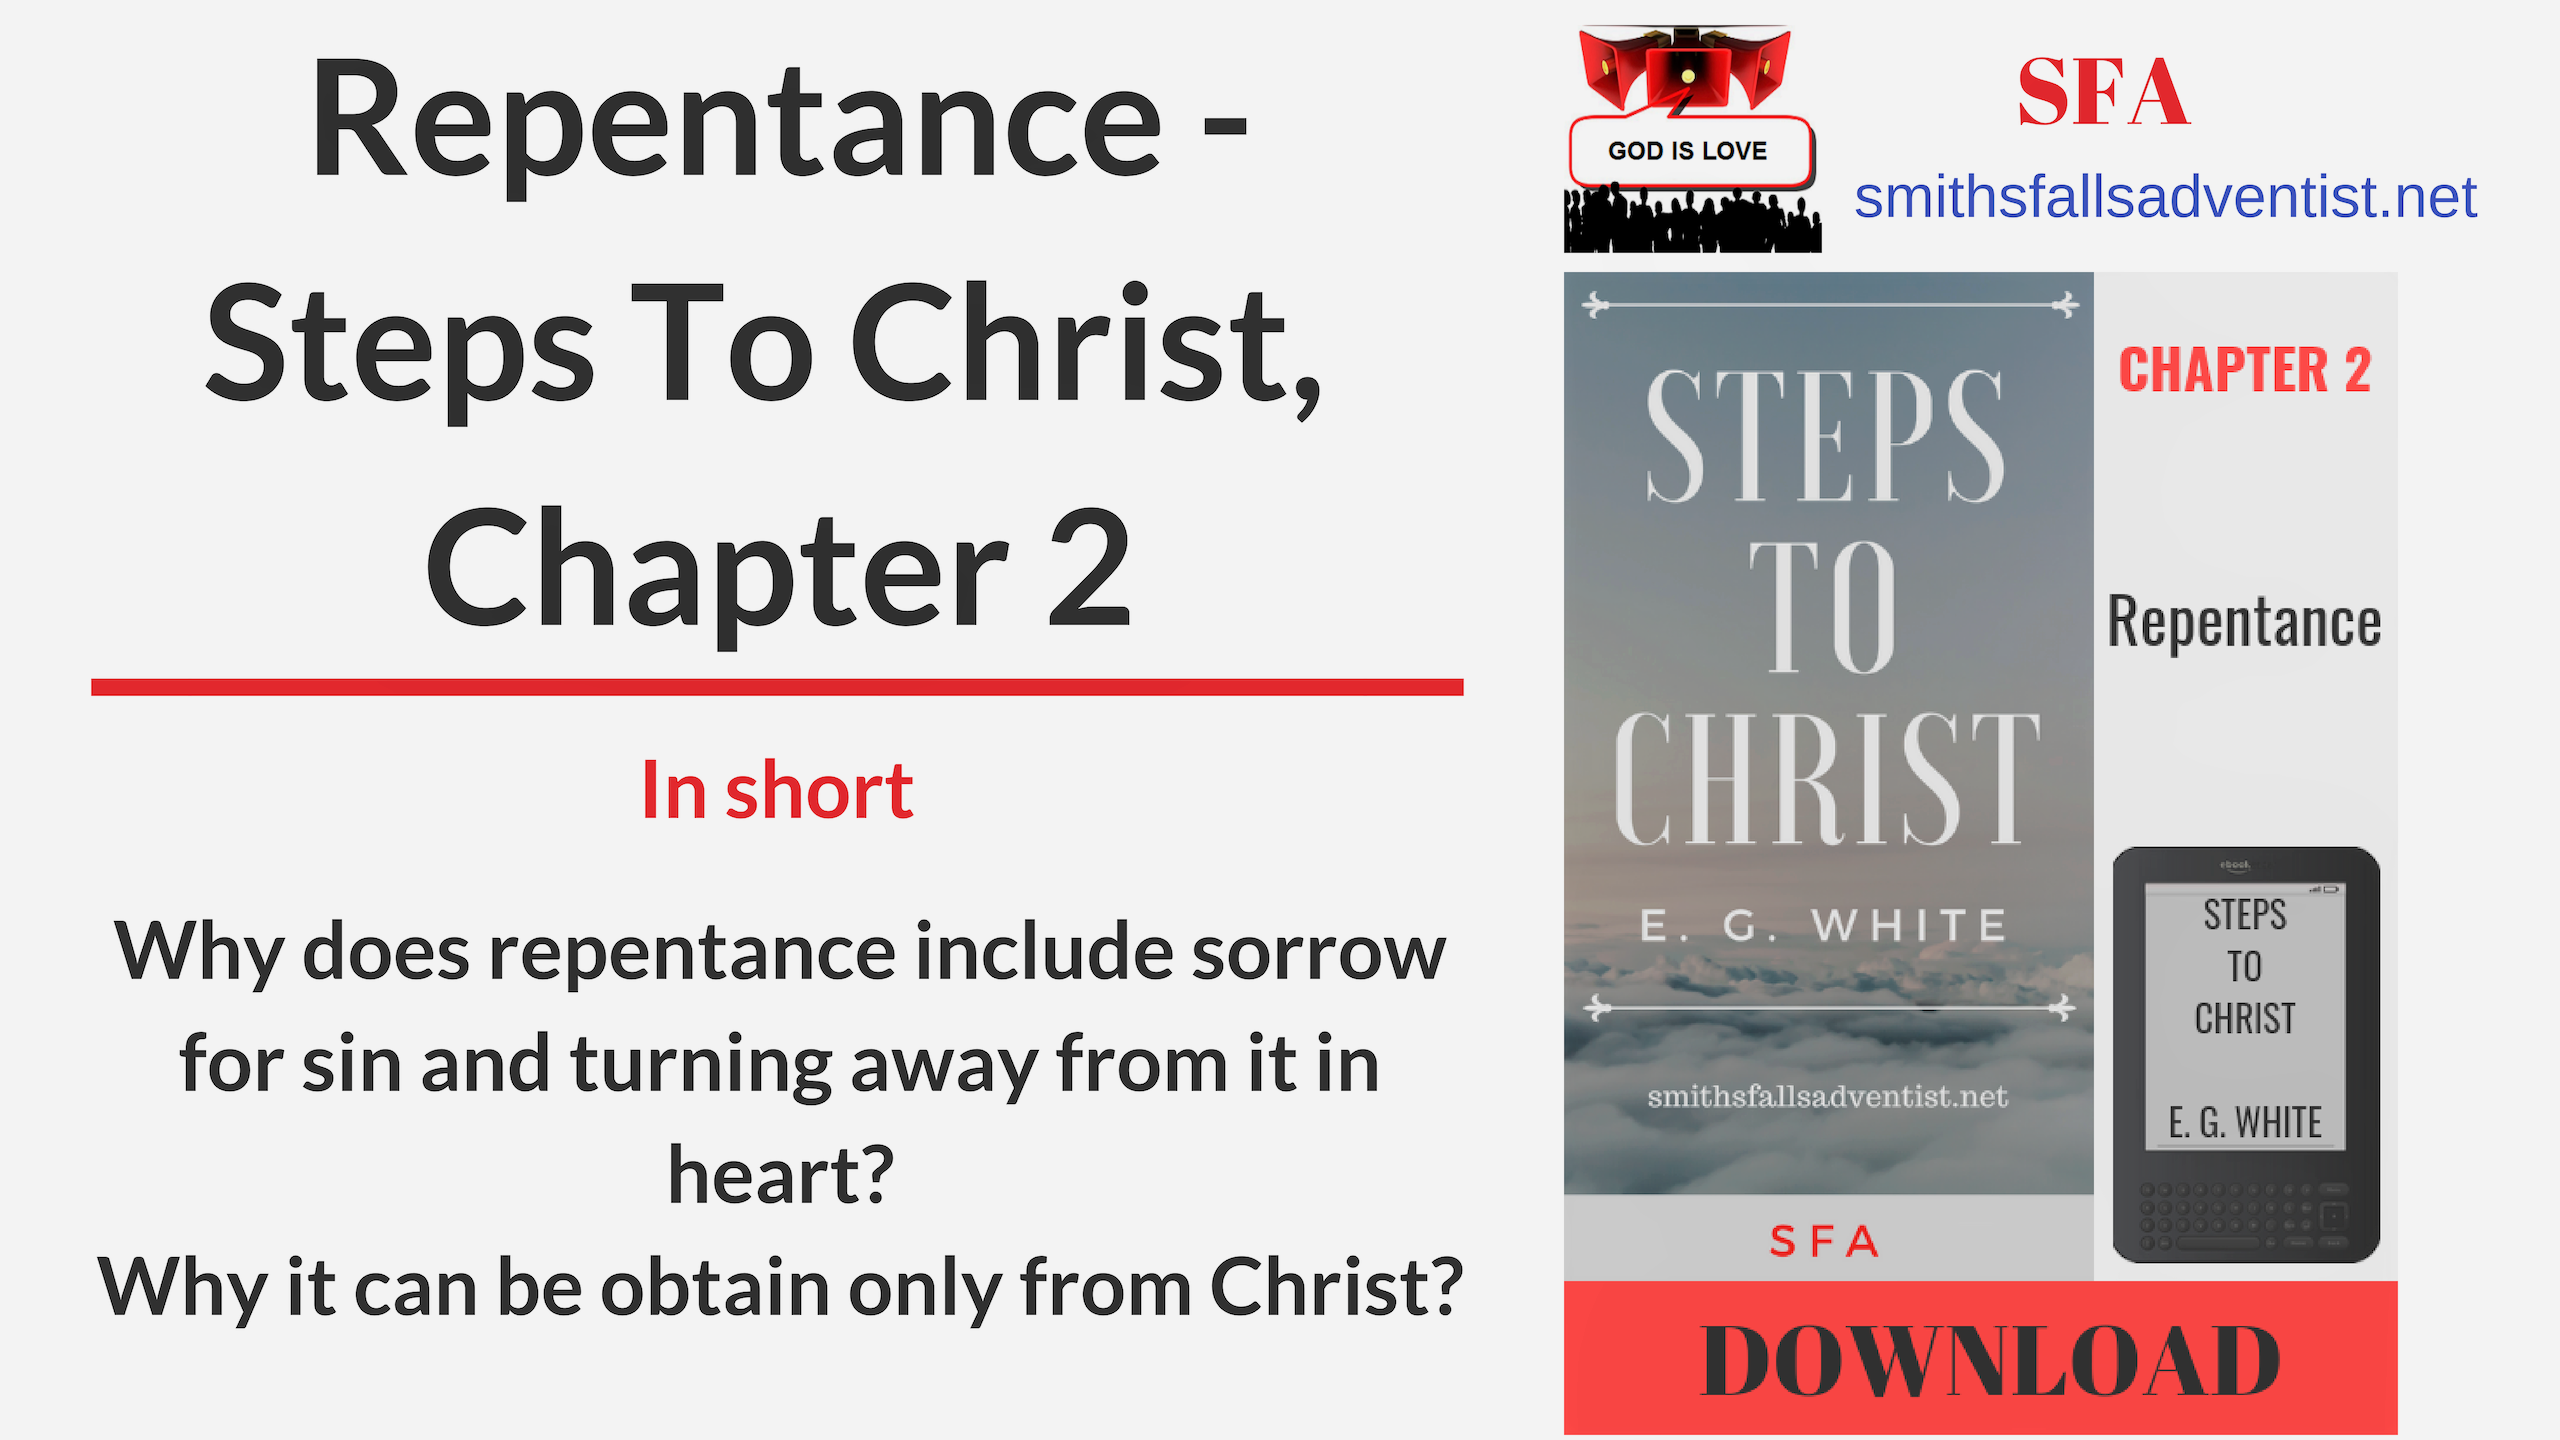 Title-Repentance-Steps-To-Christ-Chapter-2-text-logo